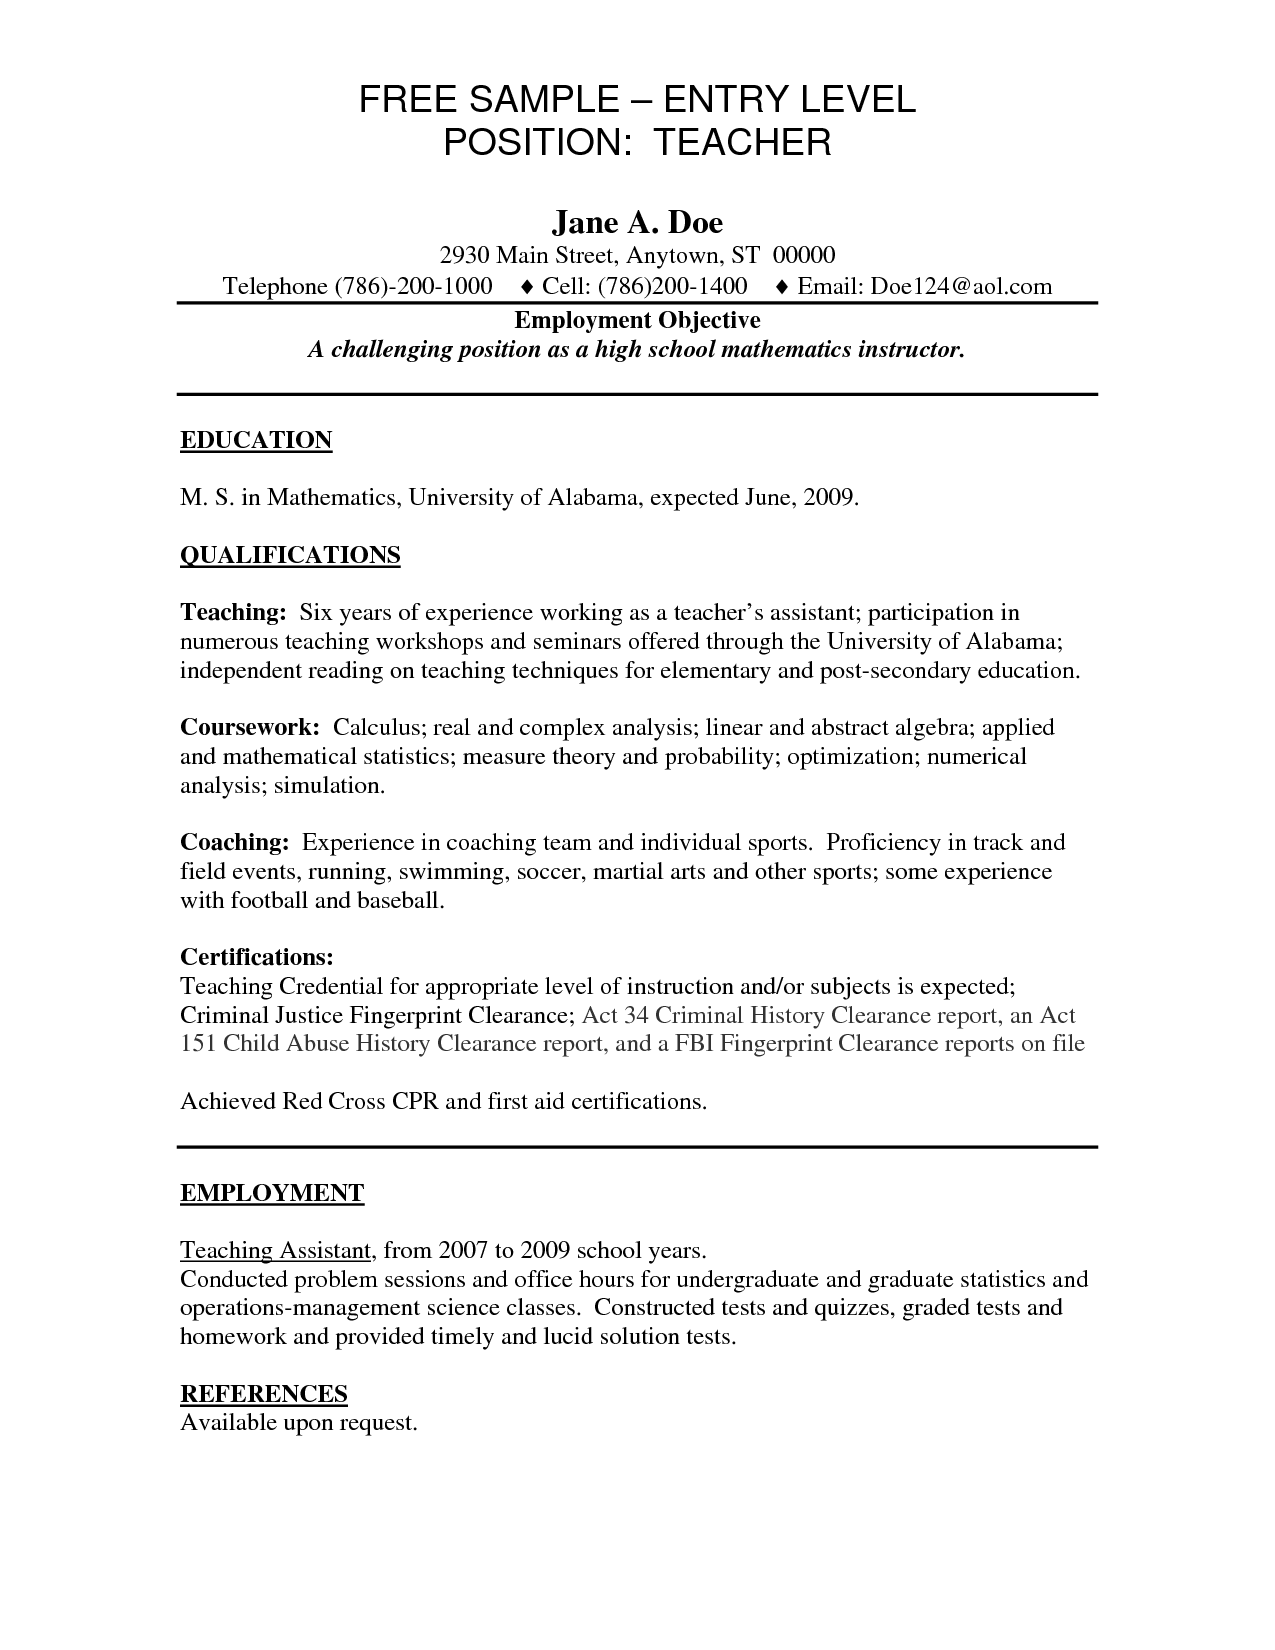 Entry Level Teacher Resume Art Example Teaching Jobs Lawteched